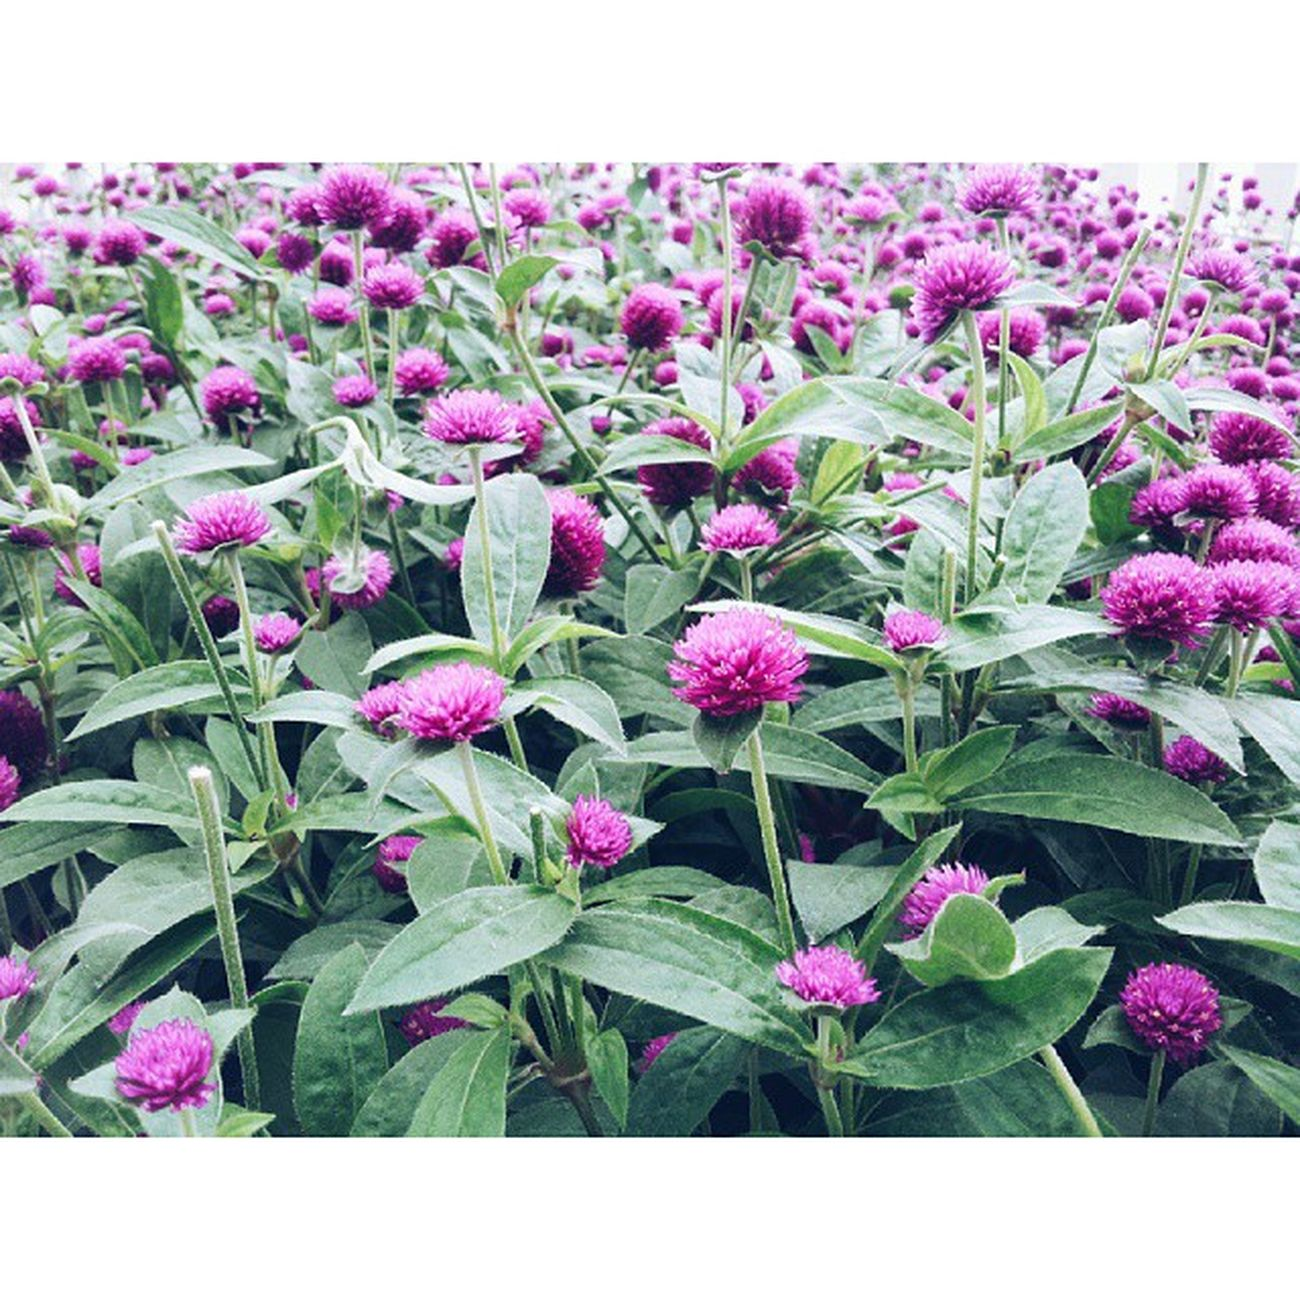 Cuci mata . . . Flower ->> @ Lavendergarden Lavenderfarm Cameronhighlands vscocam photo photooftheday view